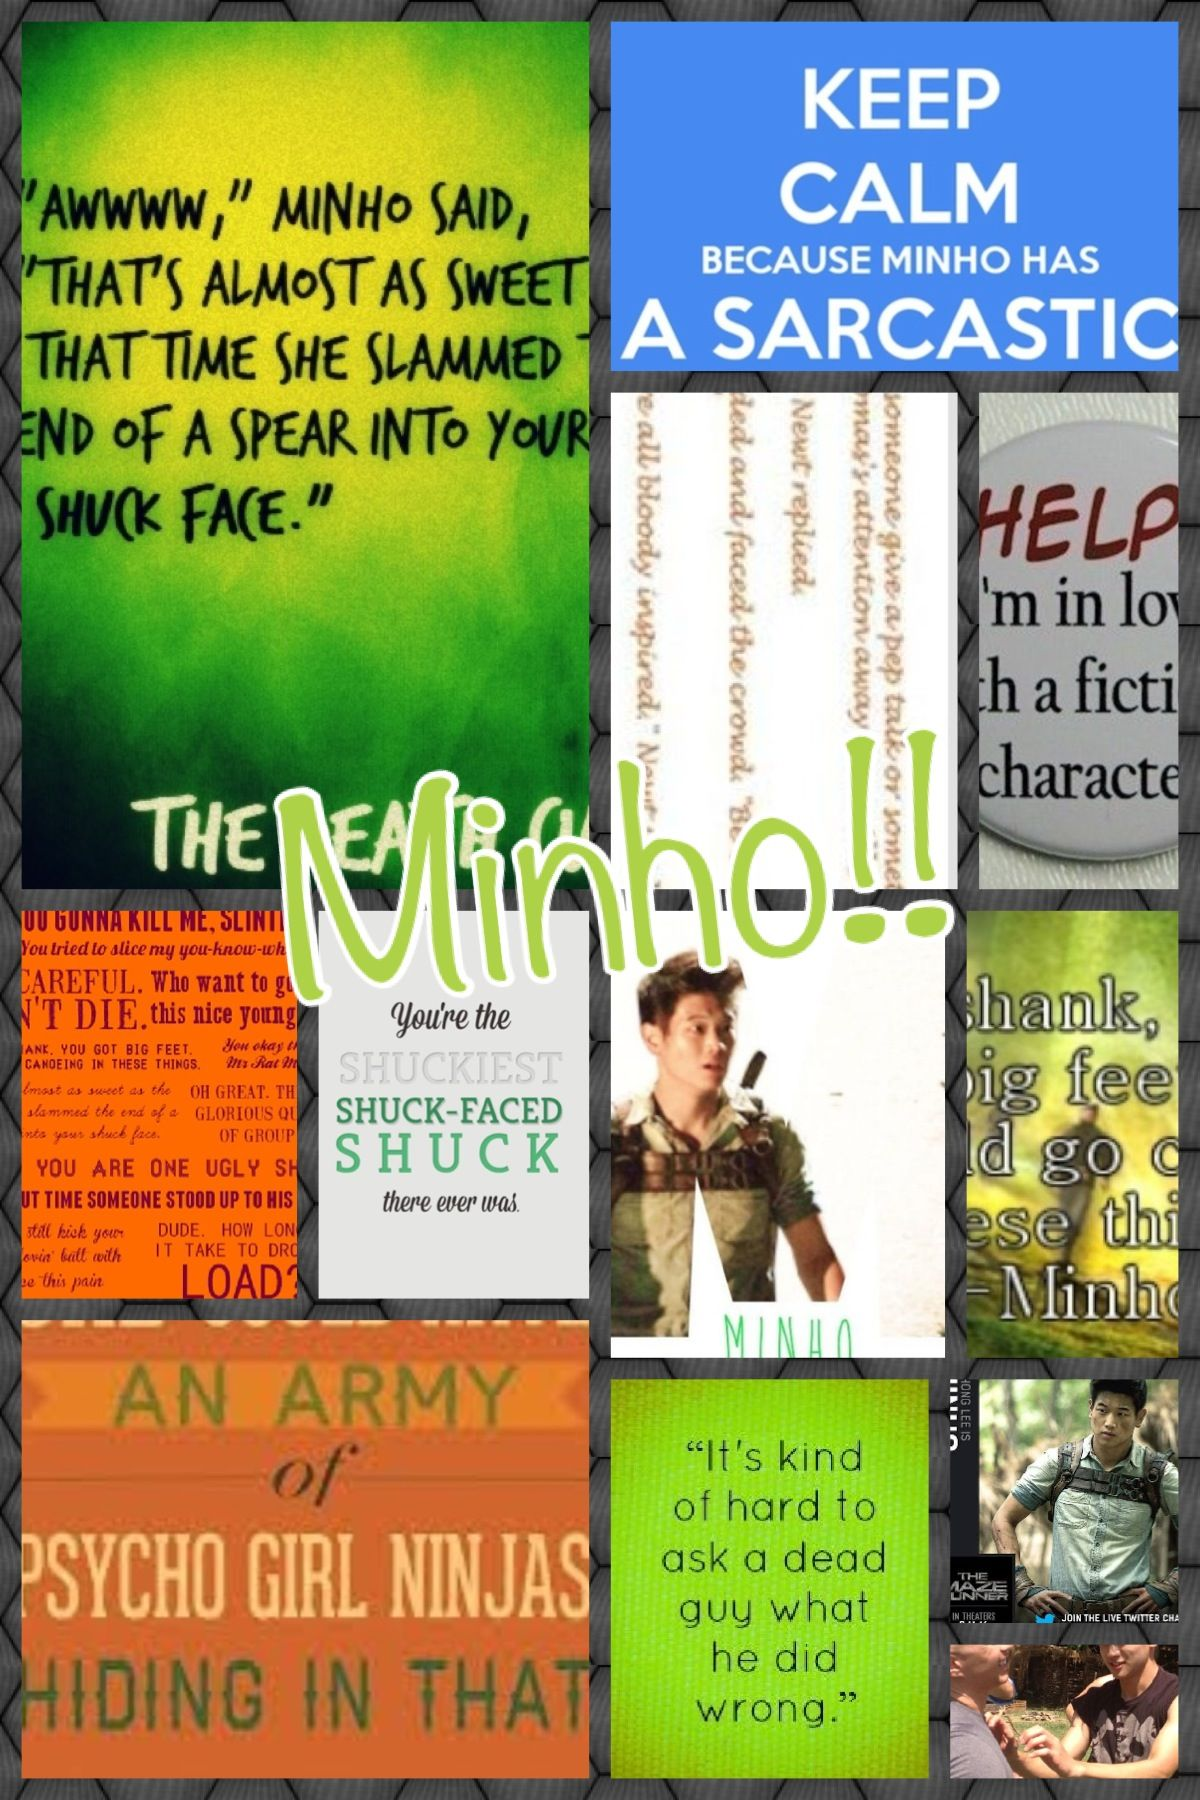 kite runner symbols and other things The kite runner and lord of the flies have many similarities, particularly when comparing themes such as loss of innocence,  we will write a custom essay sample on lord of the rings/kite runner compare and contrast essay specifically for you for only $1638 $139/page  lord of the rings/kite runner compare and contrast essay how about make it original let us edit for you at only $139 to make it 100% original.